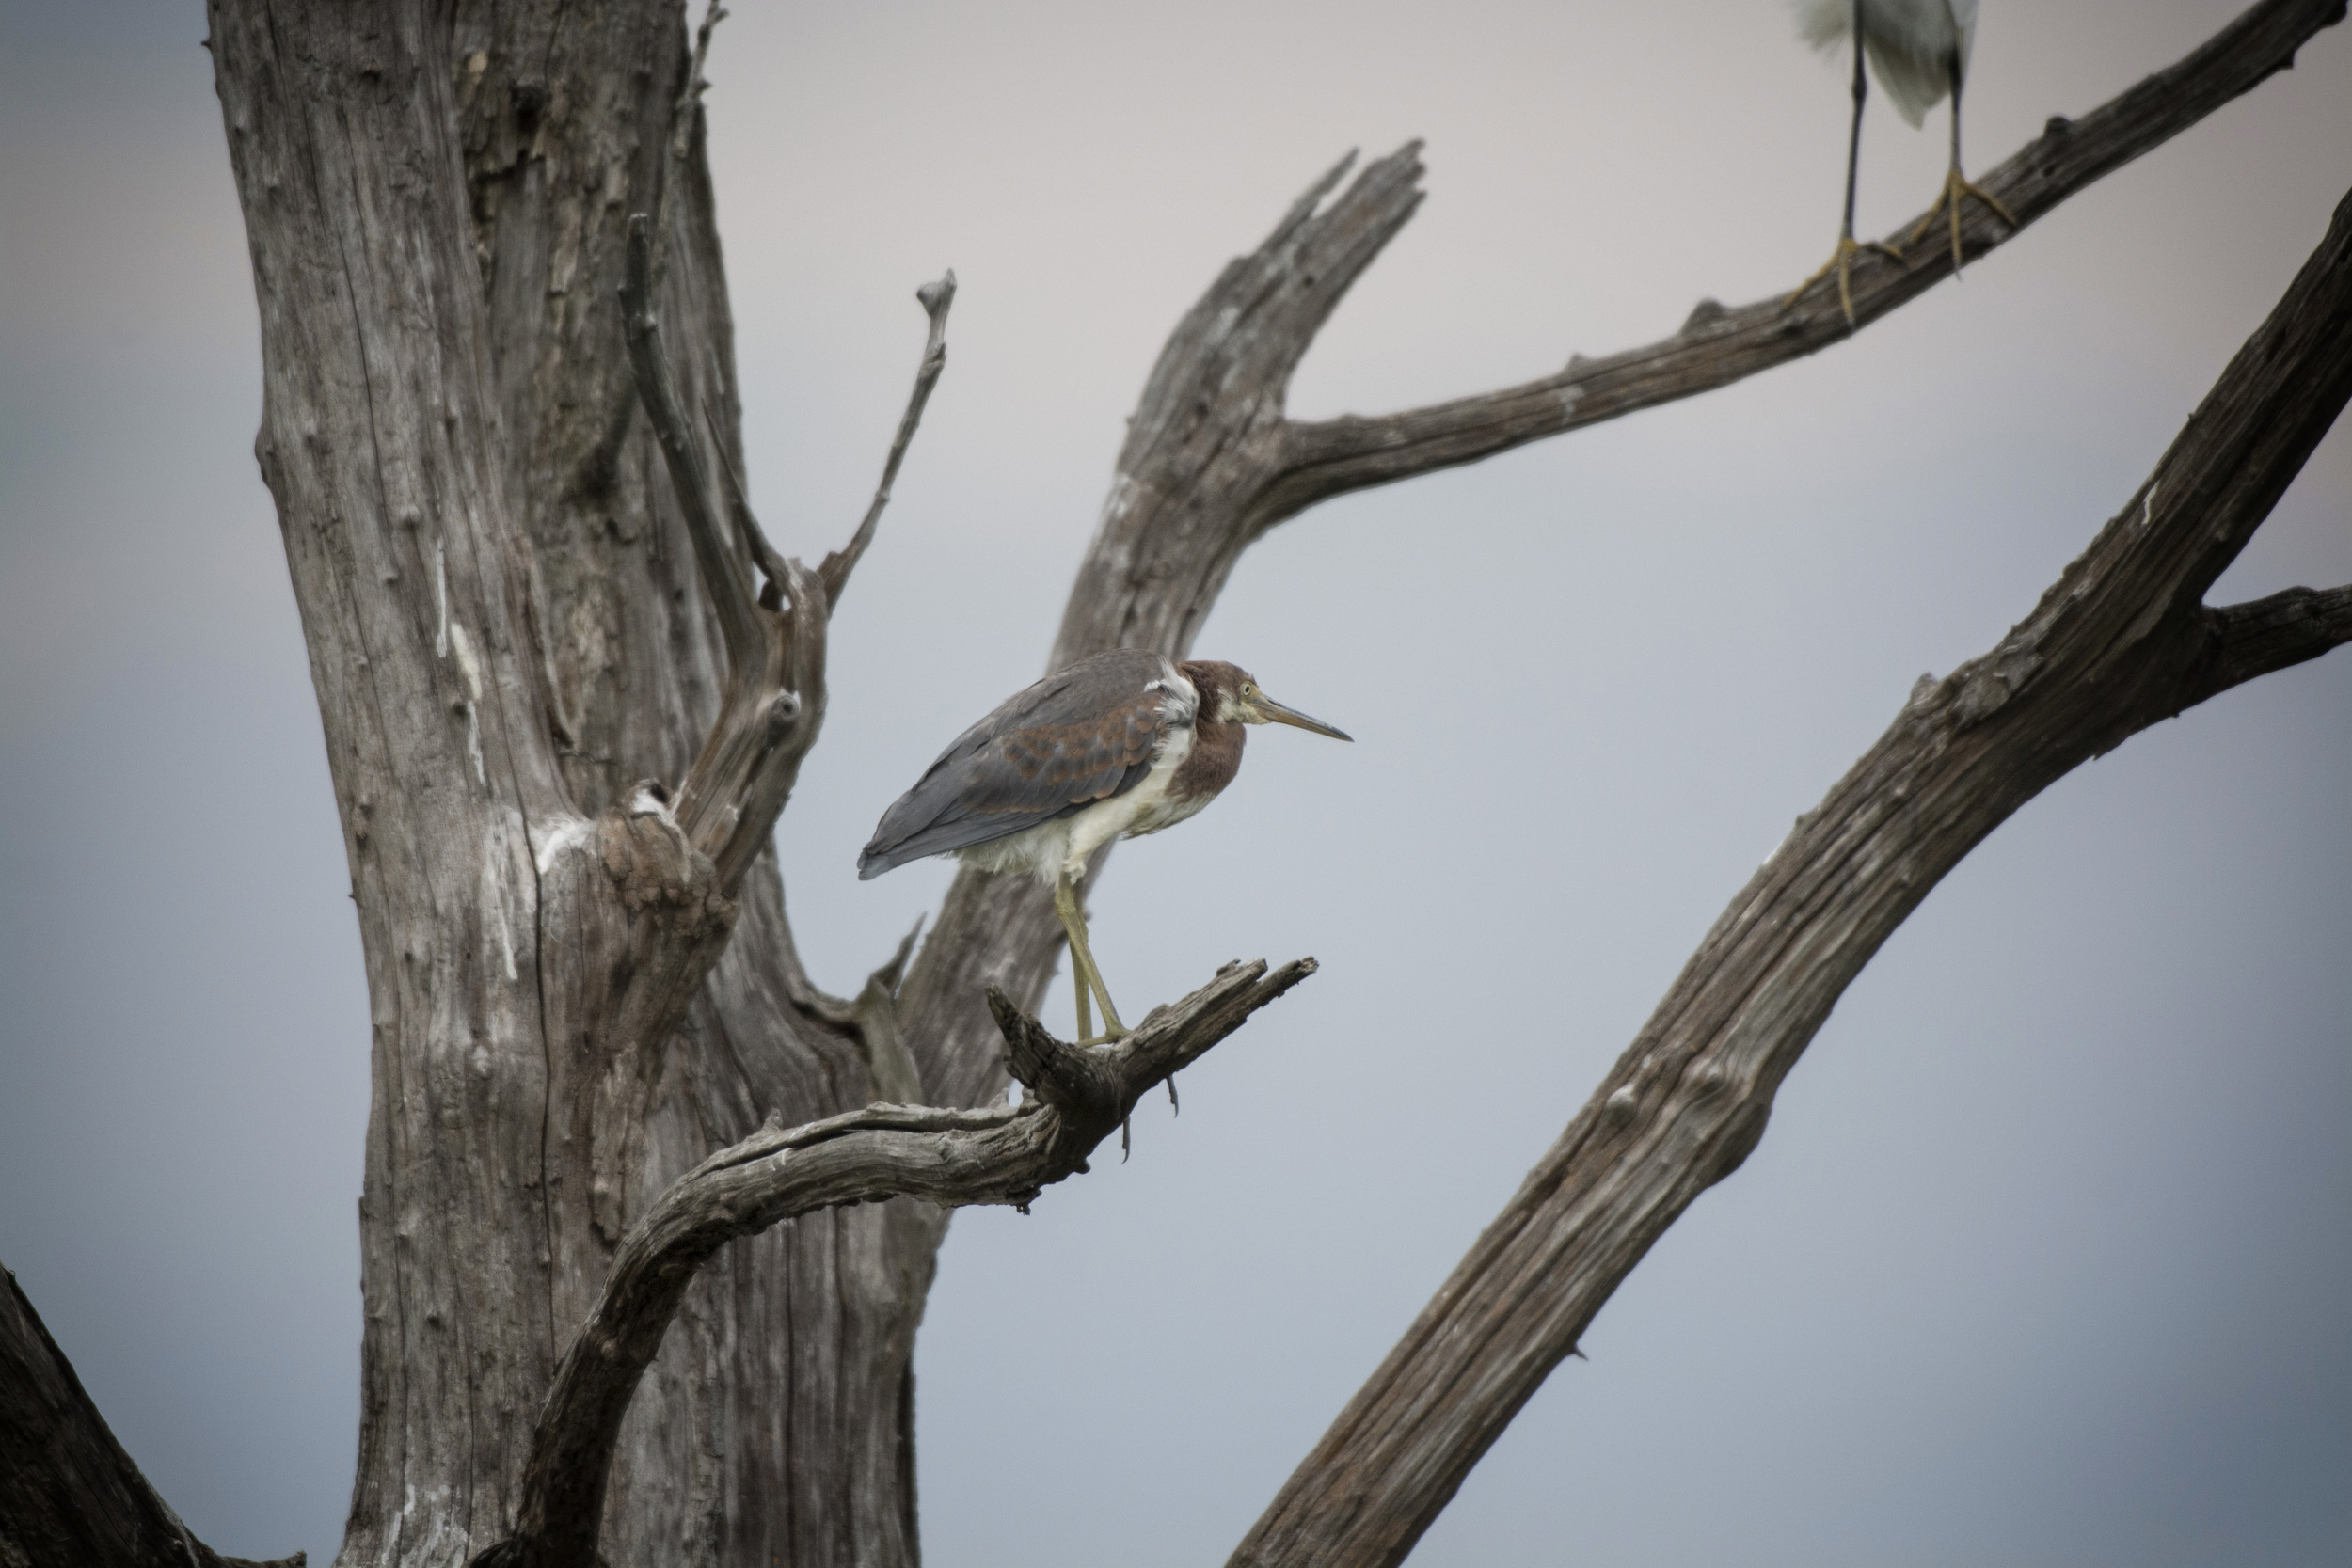 Louisiana Heron at Bombay Hook NWR